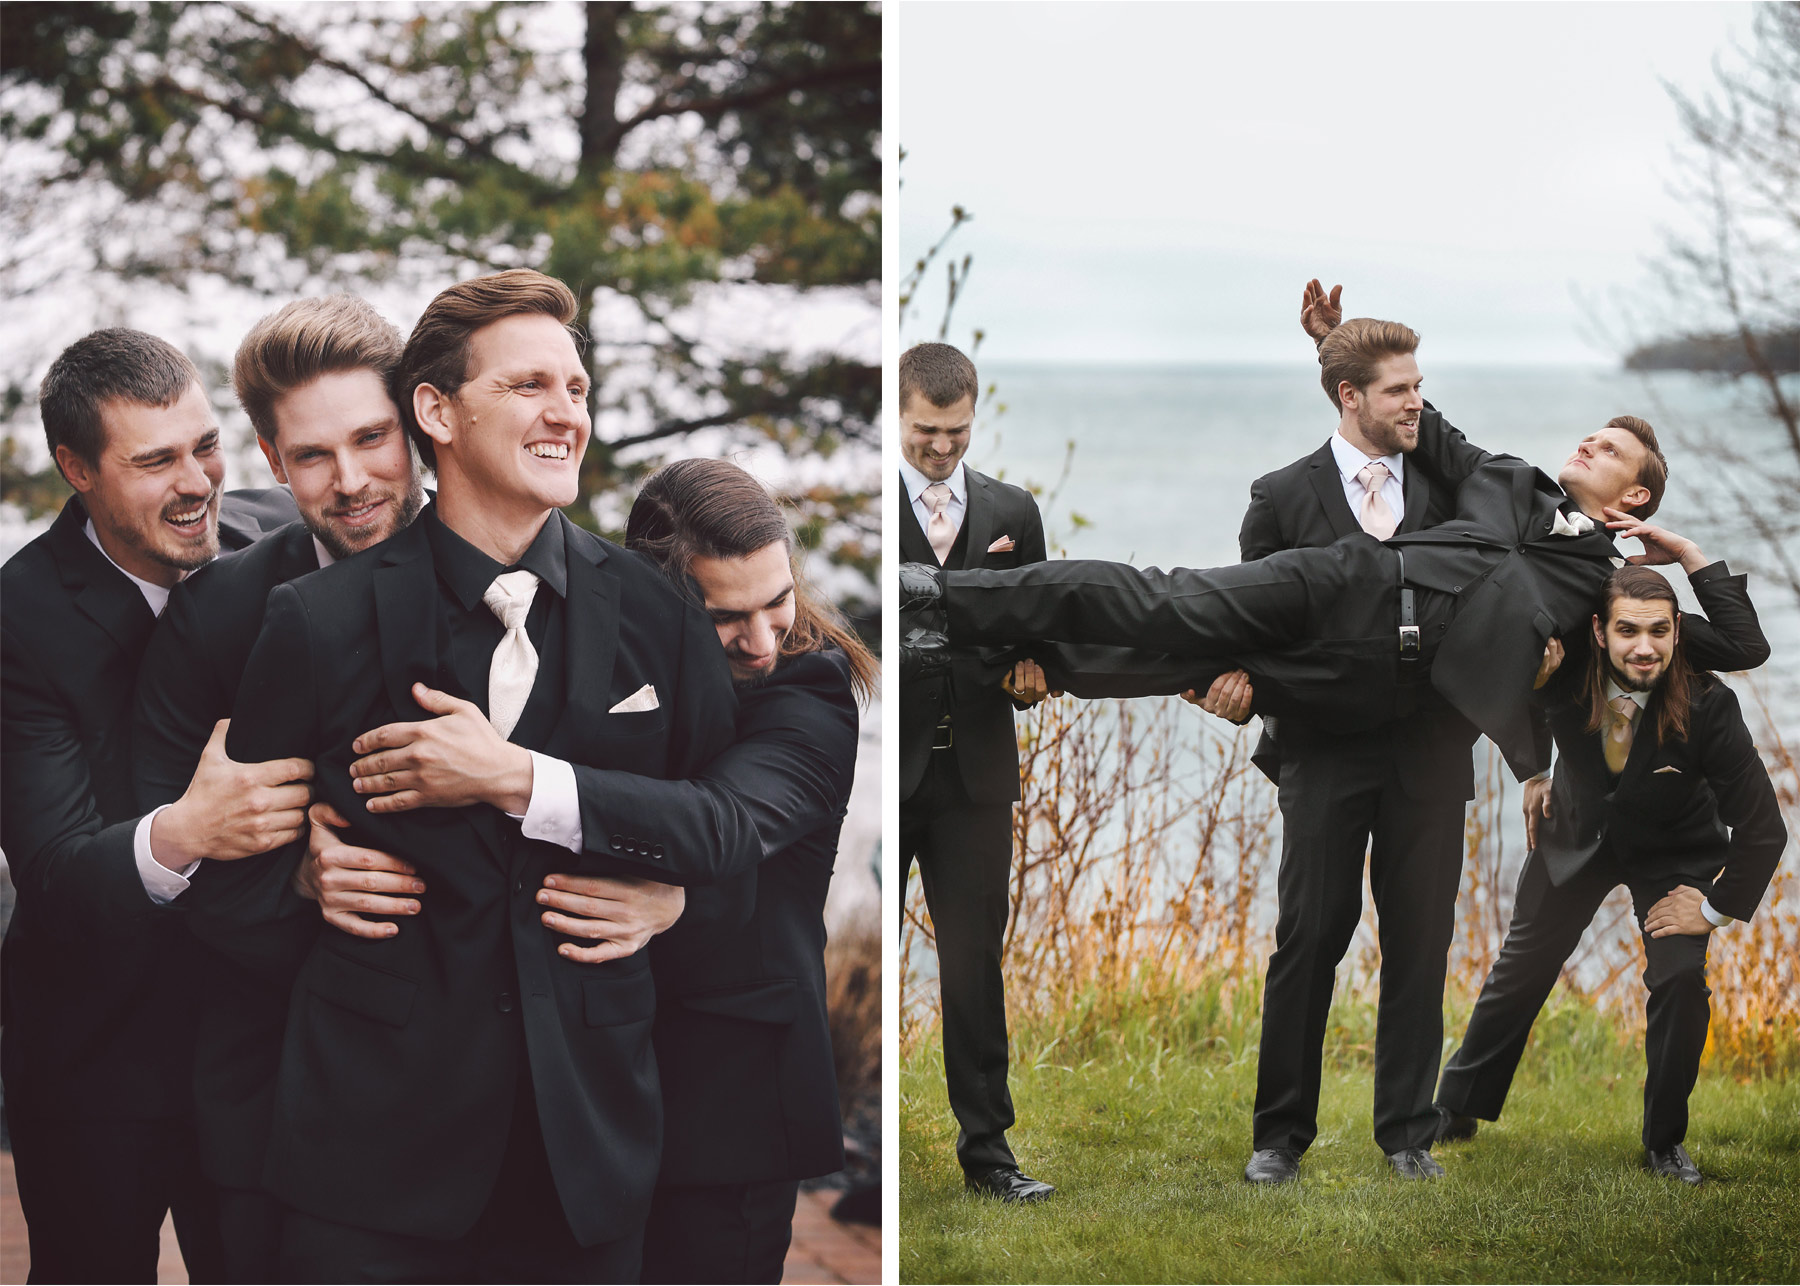 11-Minnesota-Wedding-by-Andrew-Vick-Photography-Grand-Superior-Lodge-Duluth-Two-Harbors-Groom-Groomsmen-Laughing-Lake-Superior-Rain-Shore-Veronica-and-Tyler.jpg